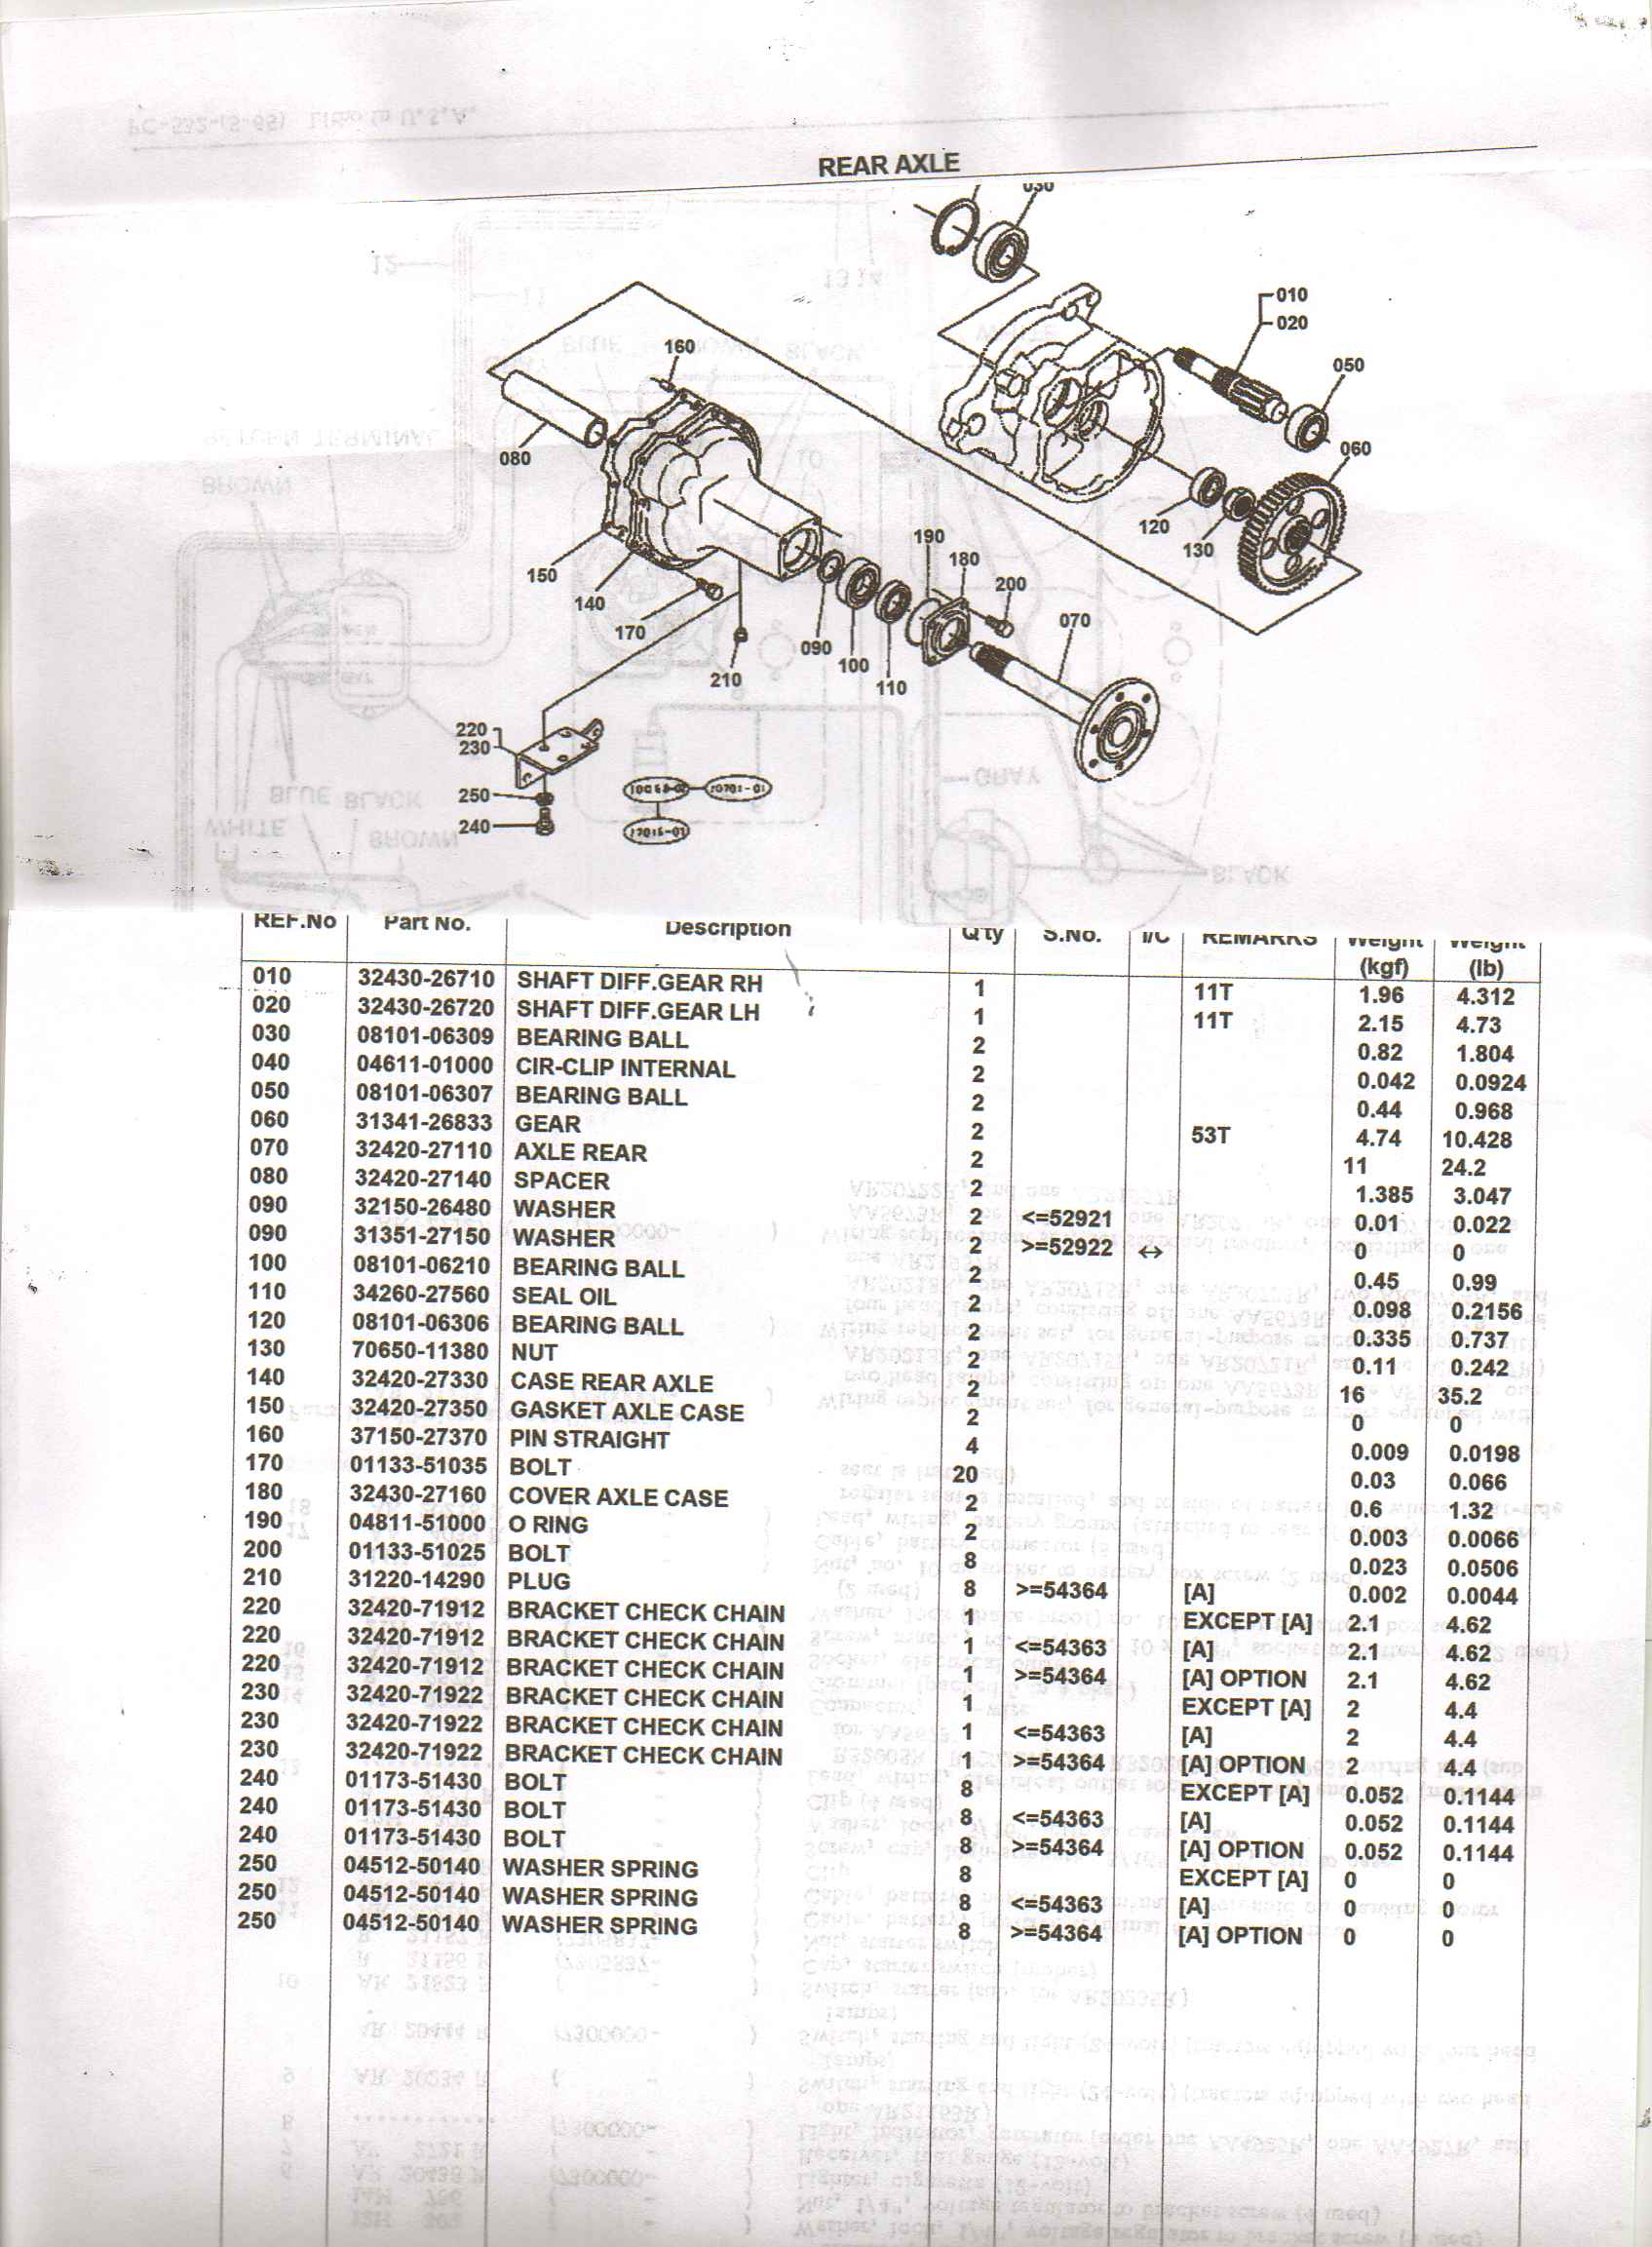 Replacement Parts For L2550 Kubota Tractor : Kubota rtv rear axle diagram get free image